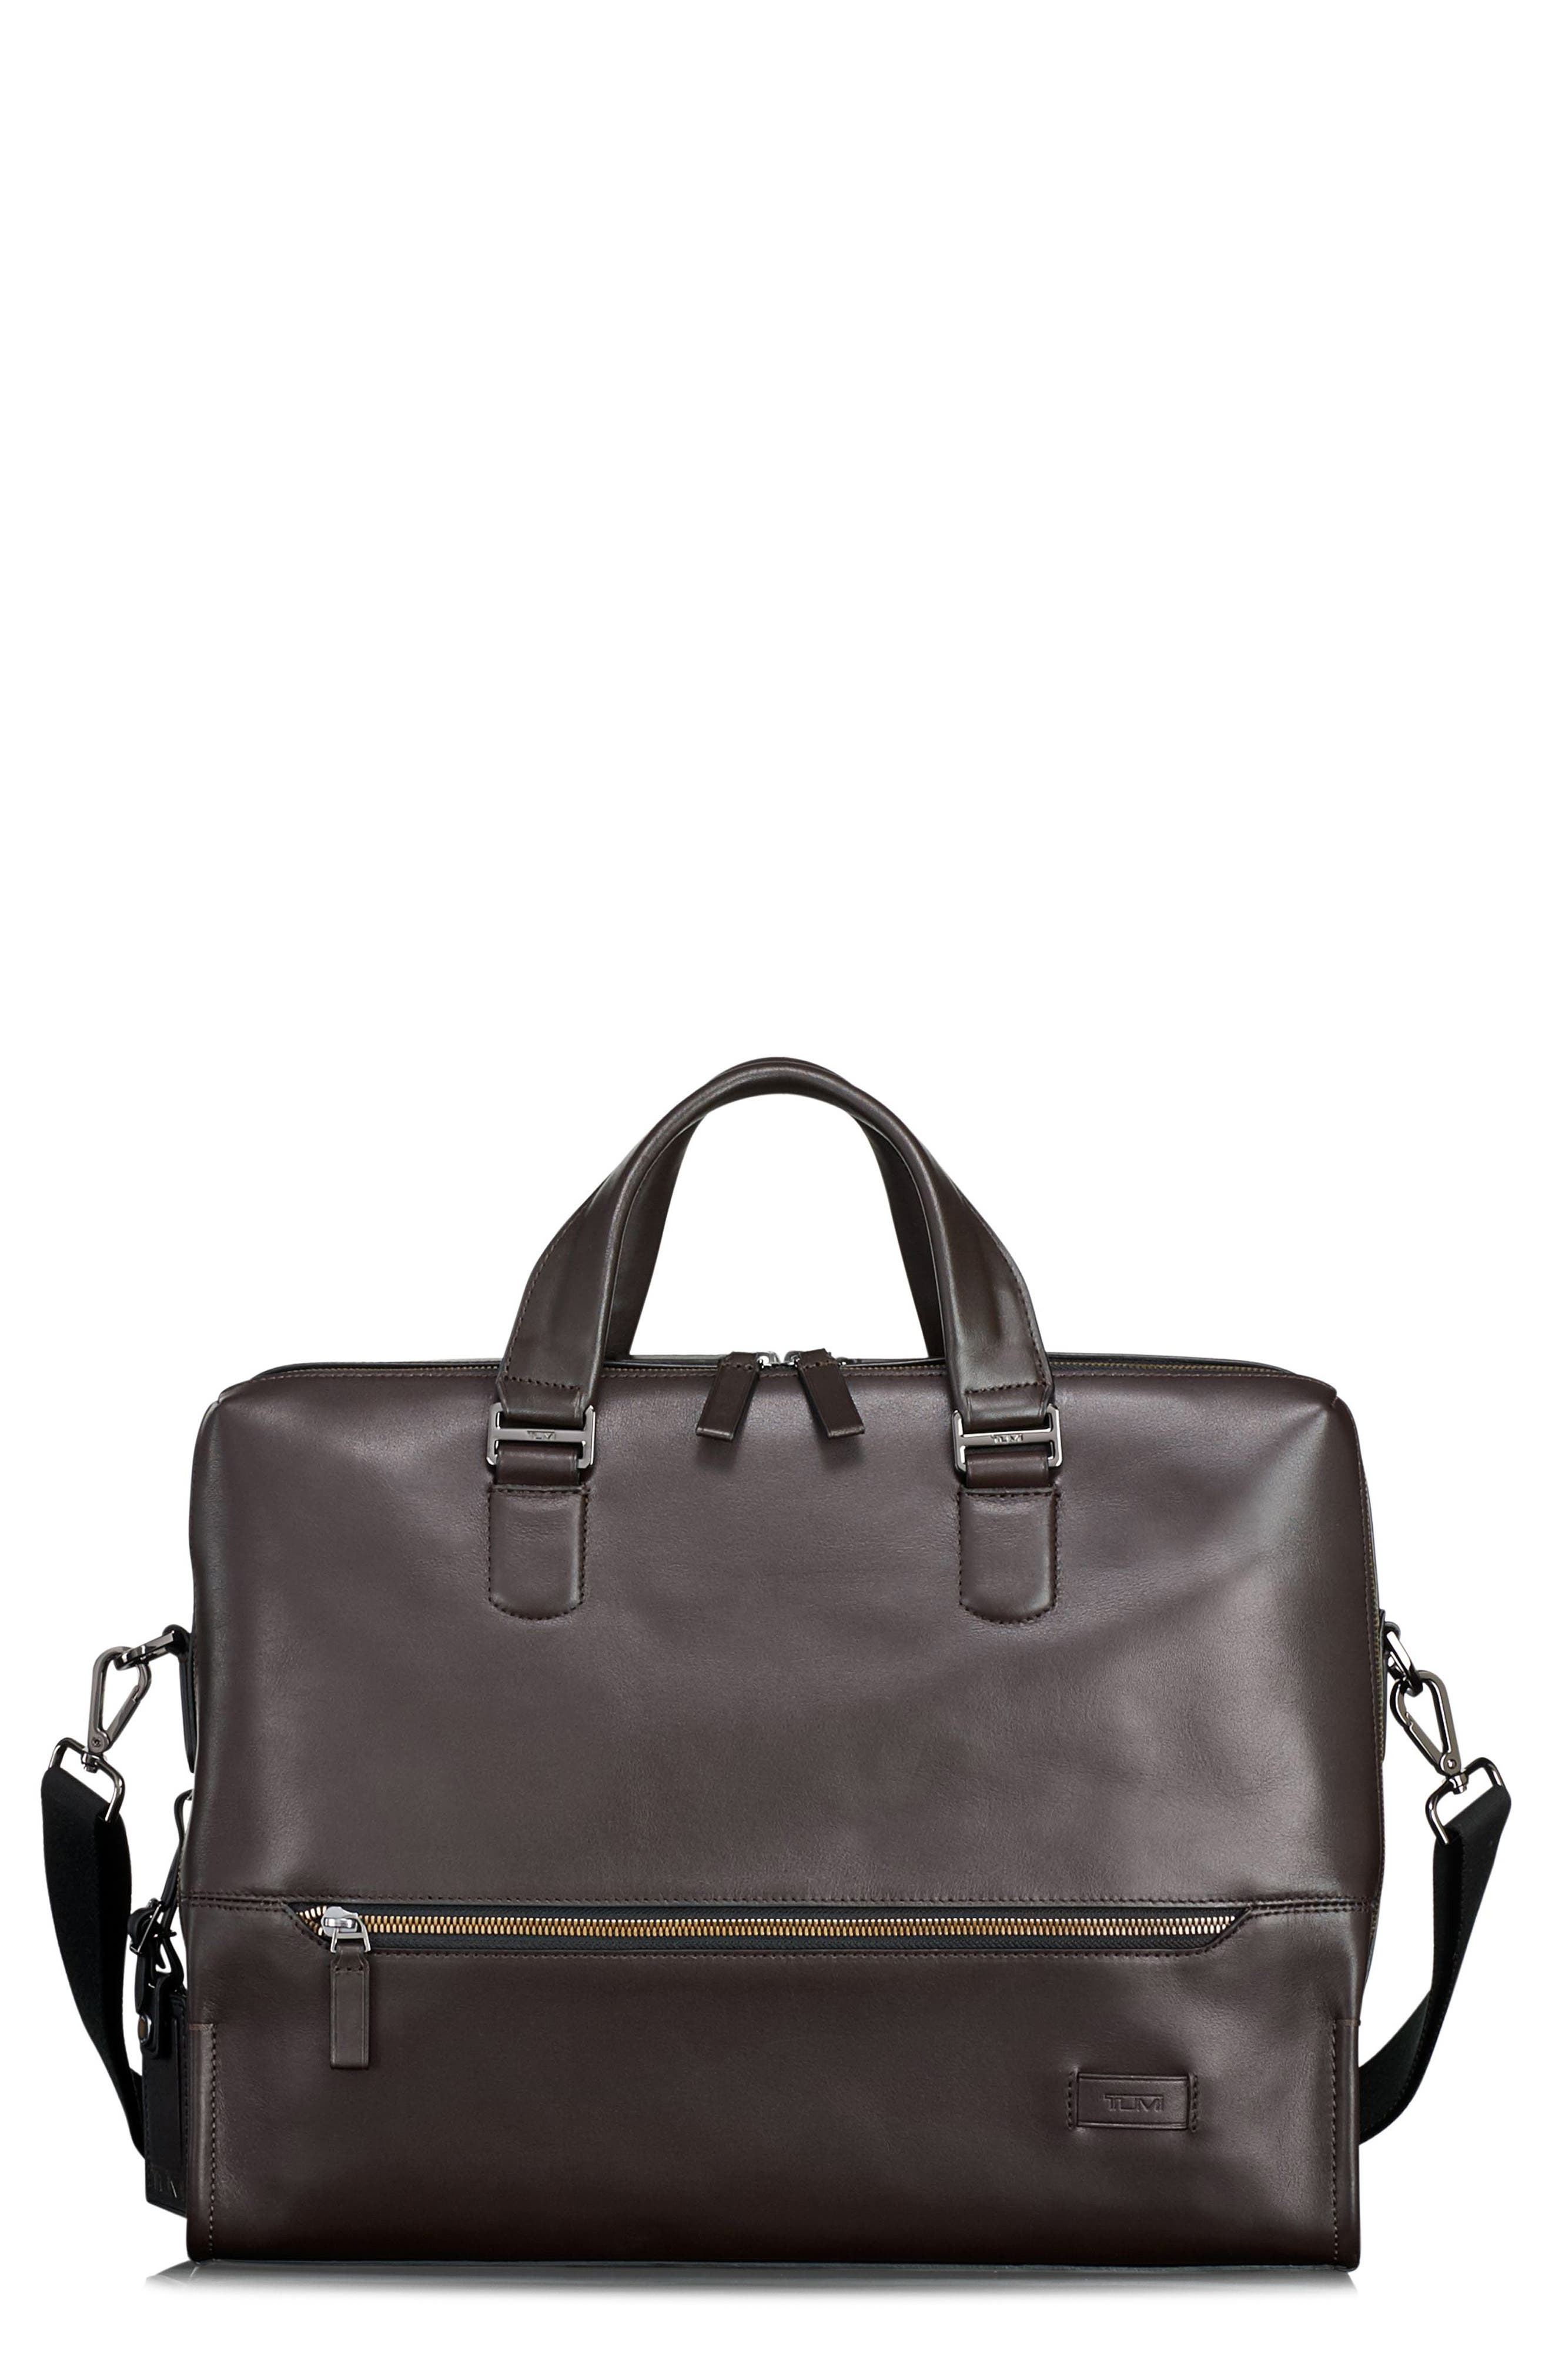 Alternate Image 1 Selected - Tumi Harrison Horton Double Zip Leather Briefcase